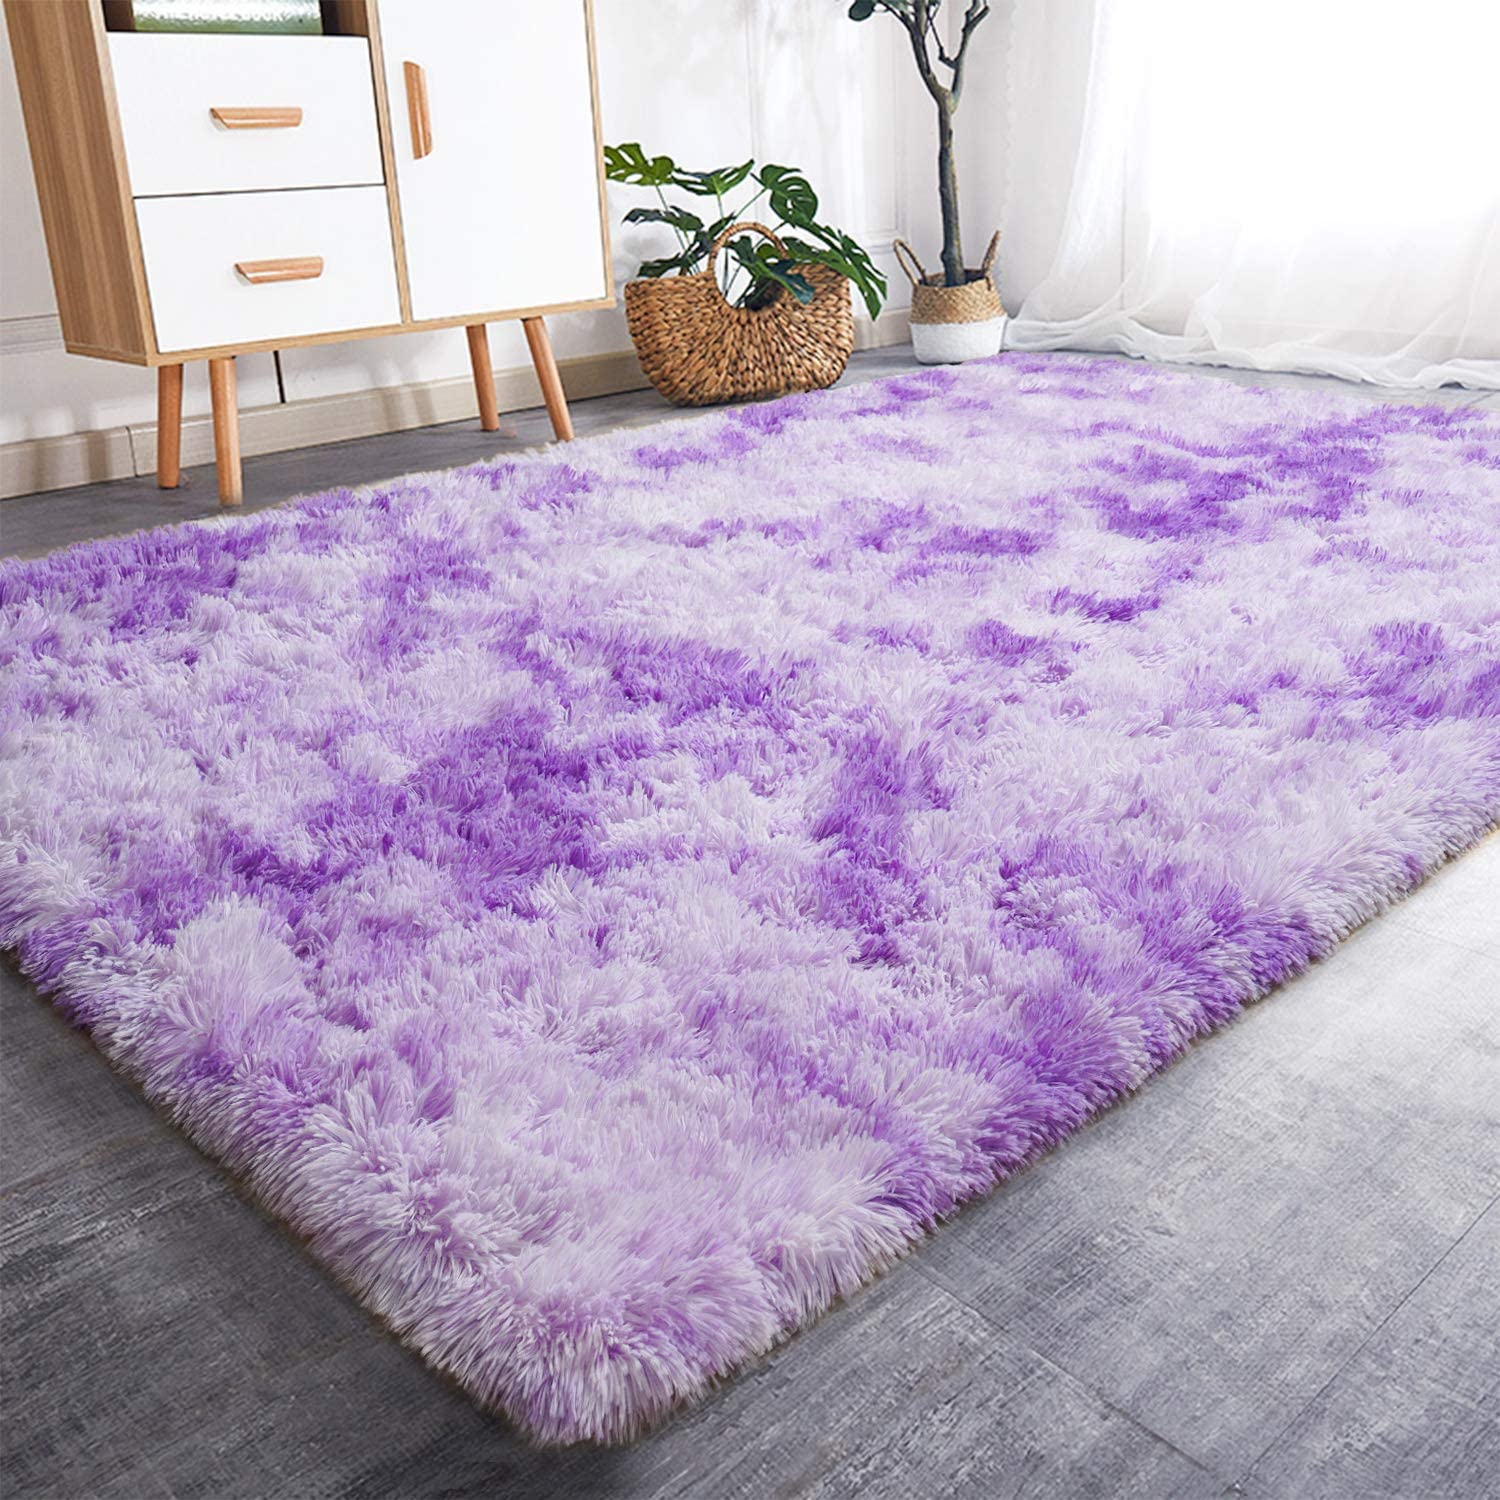 Rostyle Luxury Fluffy Area Rugs Shag Indoor Nursery Rug for Boys Girls Extra Soft Fuzzy Kids Bedroom Carpets Plush Living Room Home Decorate Area Rugs, 6 ft x 9 ft, Purple